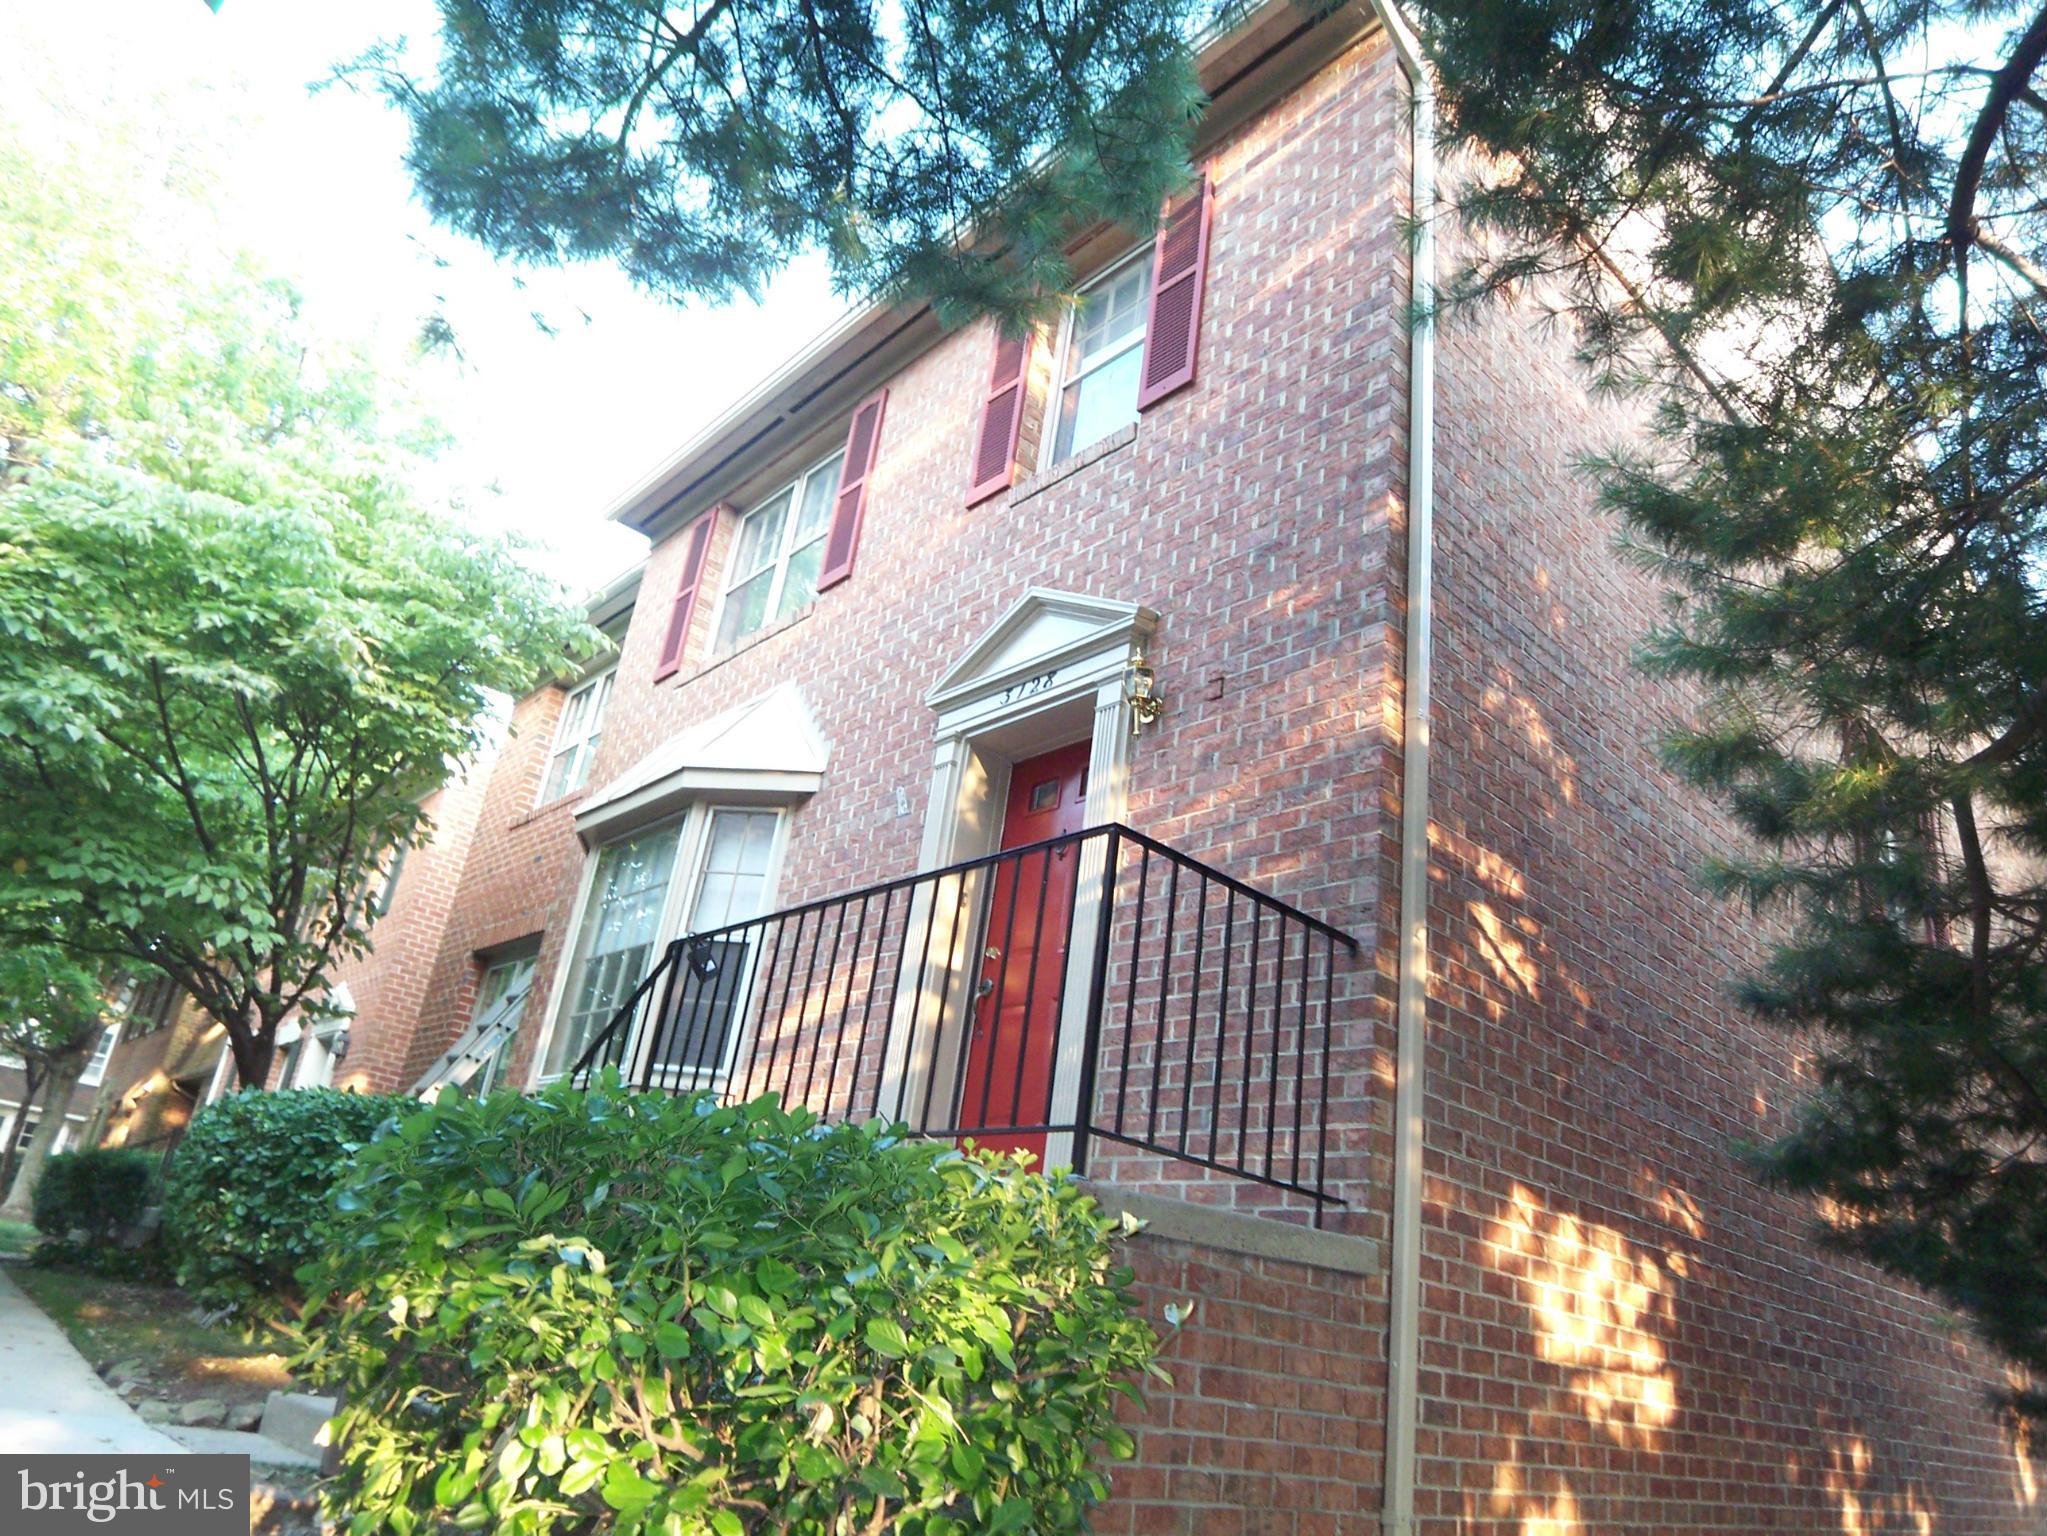 BRICK 23 FT WIDE TH. NEW 3 1/4 INCH HARDWOOD FLOORS IN LR&DR. NEWER CABINETS & GRANITE COUNTERS IN KITCHEN .WALK-OUT LOWER LEVEL WITH REC ROOM & BRICK FIREPLACE, DEN, FULL BATH, LAUNDRY ROOM AND STORAGE ROOM. GAS HEAT. GAS COOKING 1.6 MILES TO METRO.. NEW 2 INCH BLINDS,FRESHLY PAINTED. THE 2 UPPER LEVEL BATH HAVE BEEN RETILED. .